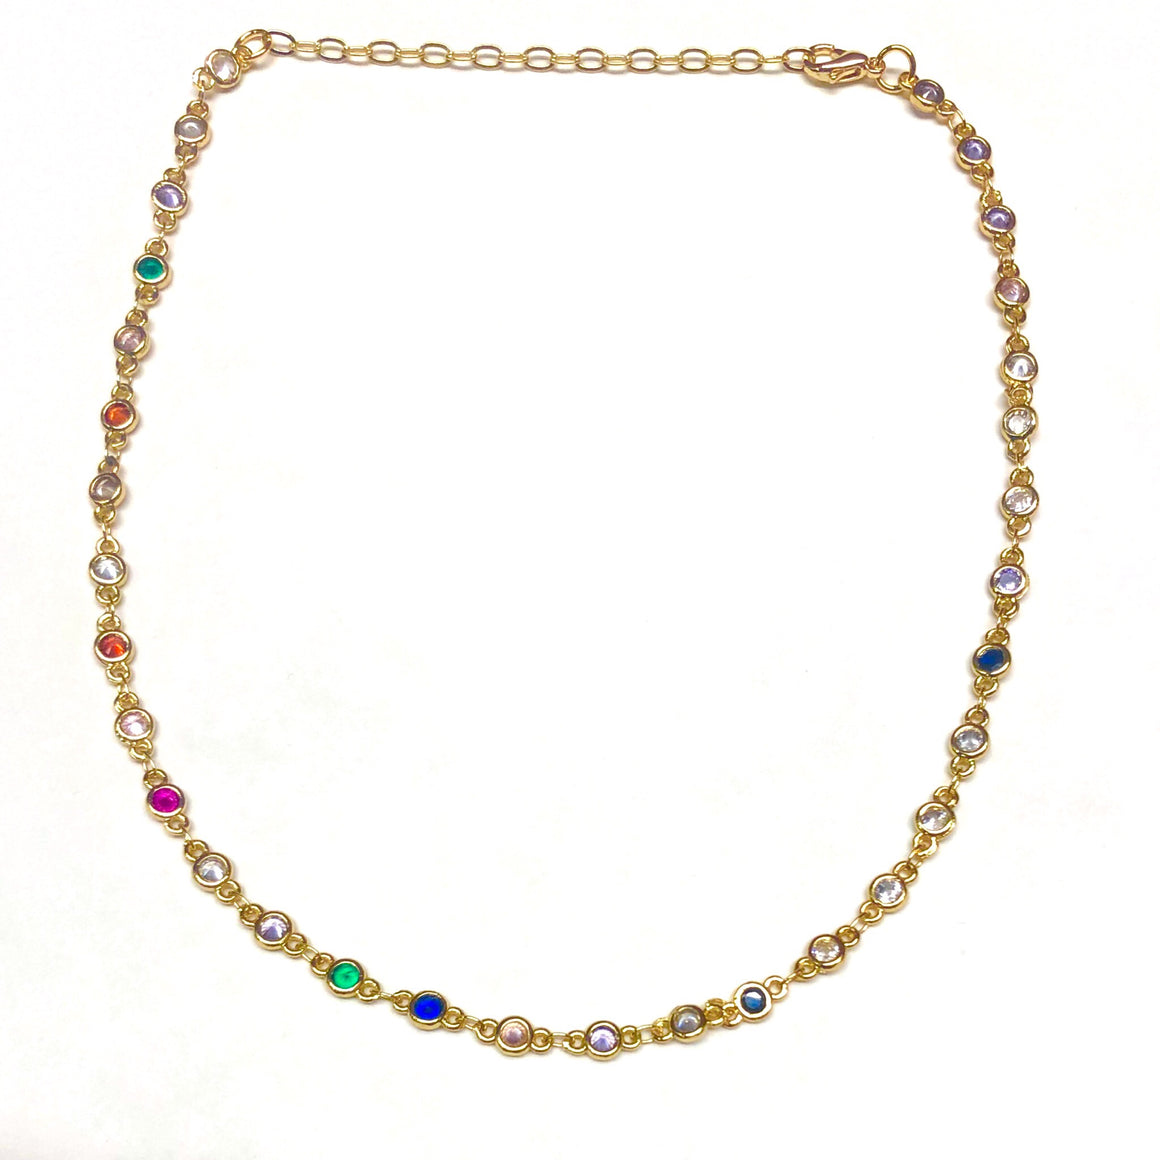 Annie Rainbow Choker - Nikki Smith Designs